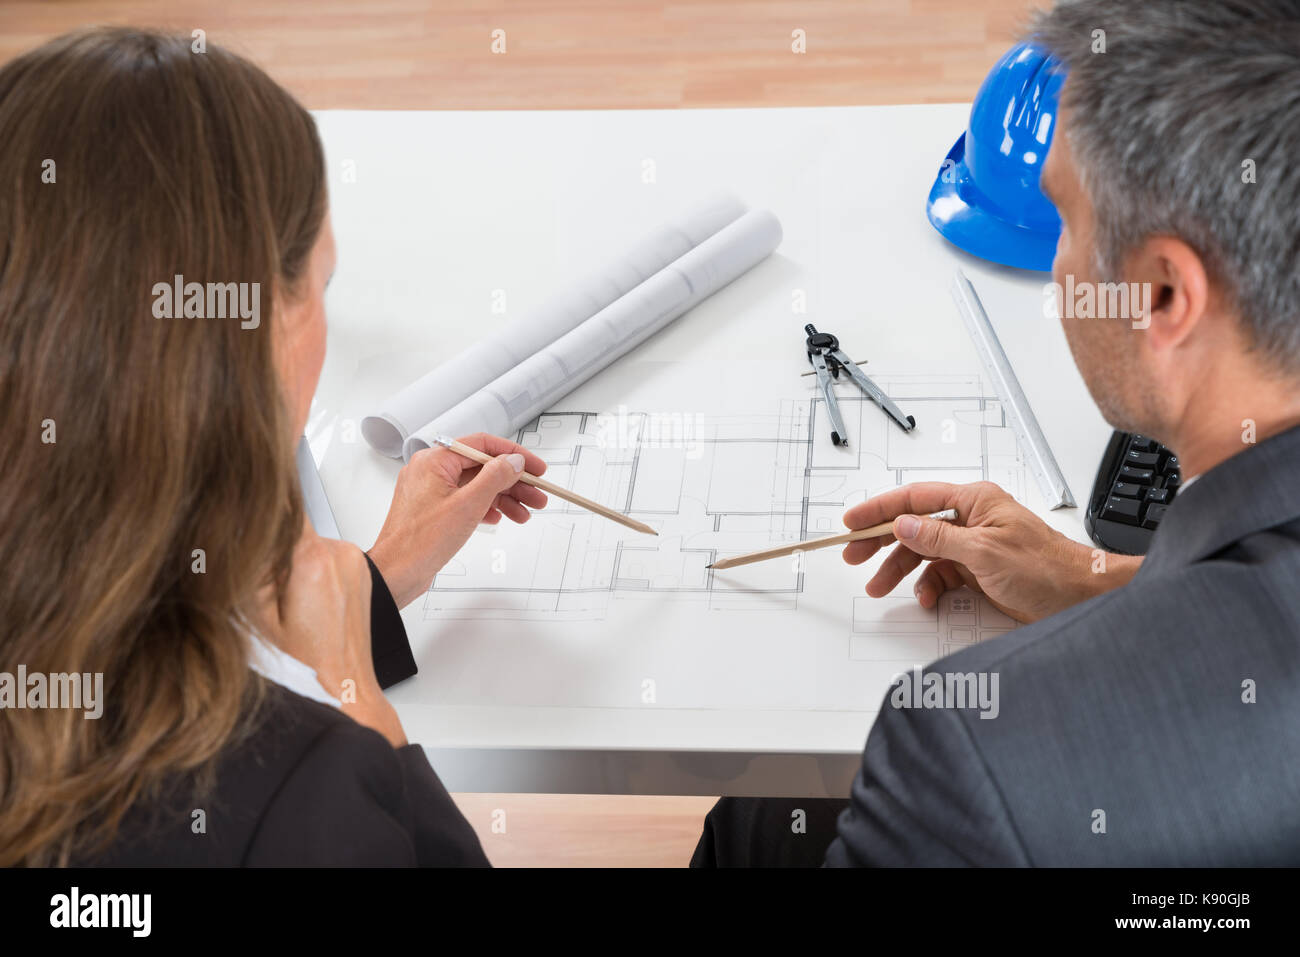 Close-up Of Two Businesspeople Working On Blueprint In Office - Stock Image